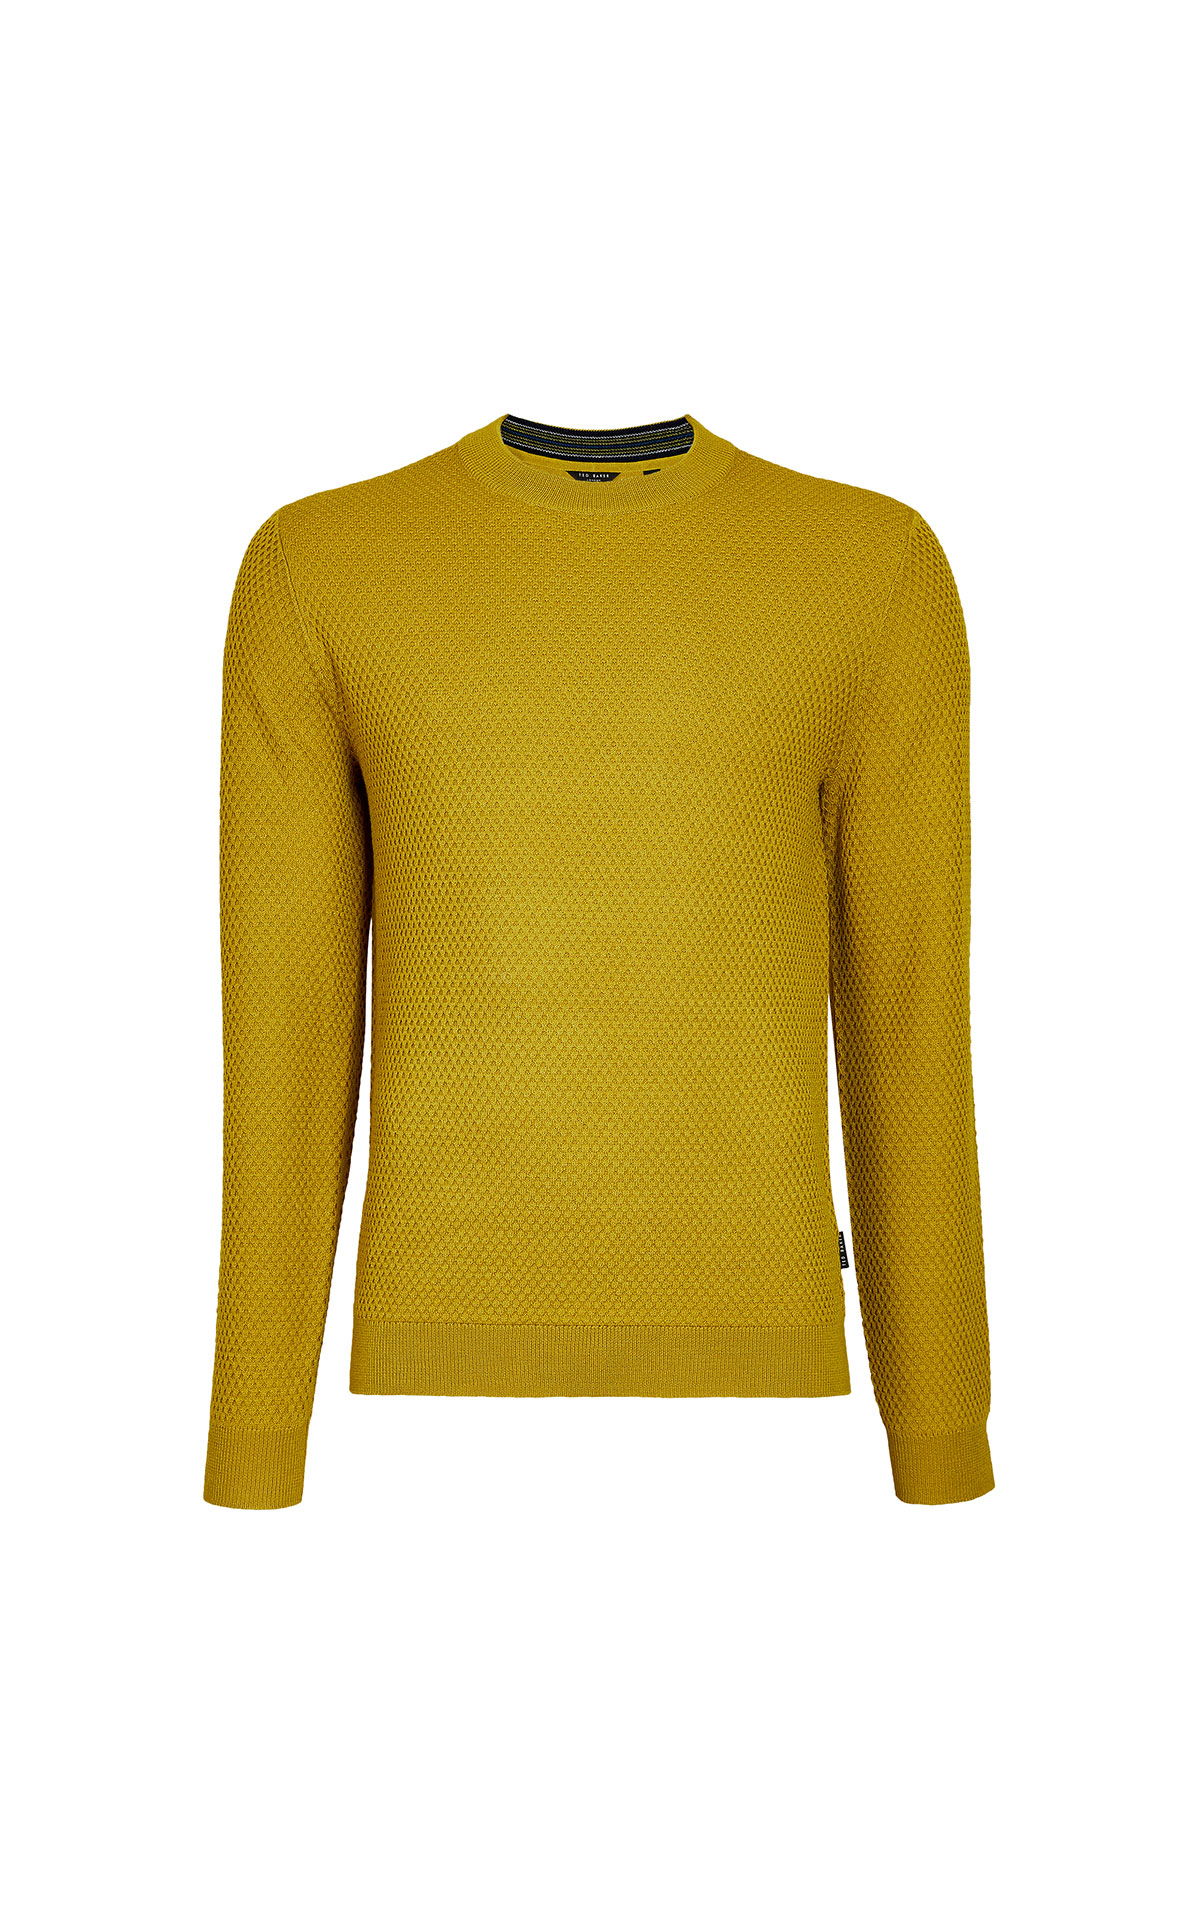 Ted Baker Seer ls textured crew neck from Bicester Village